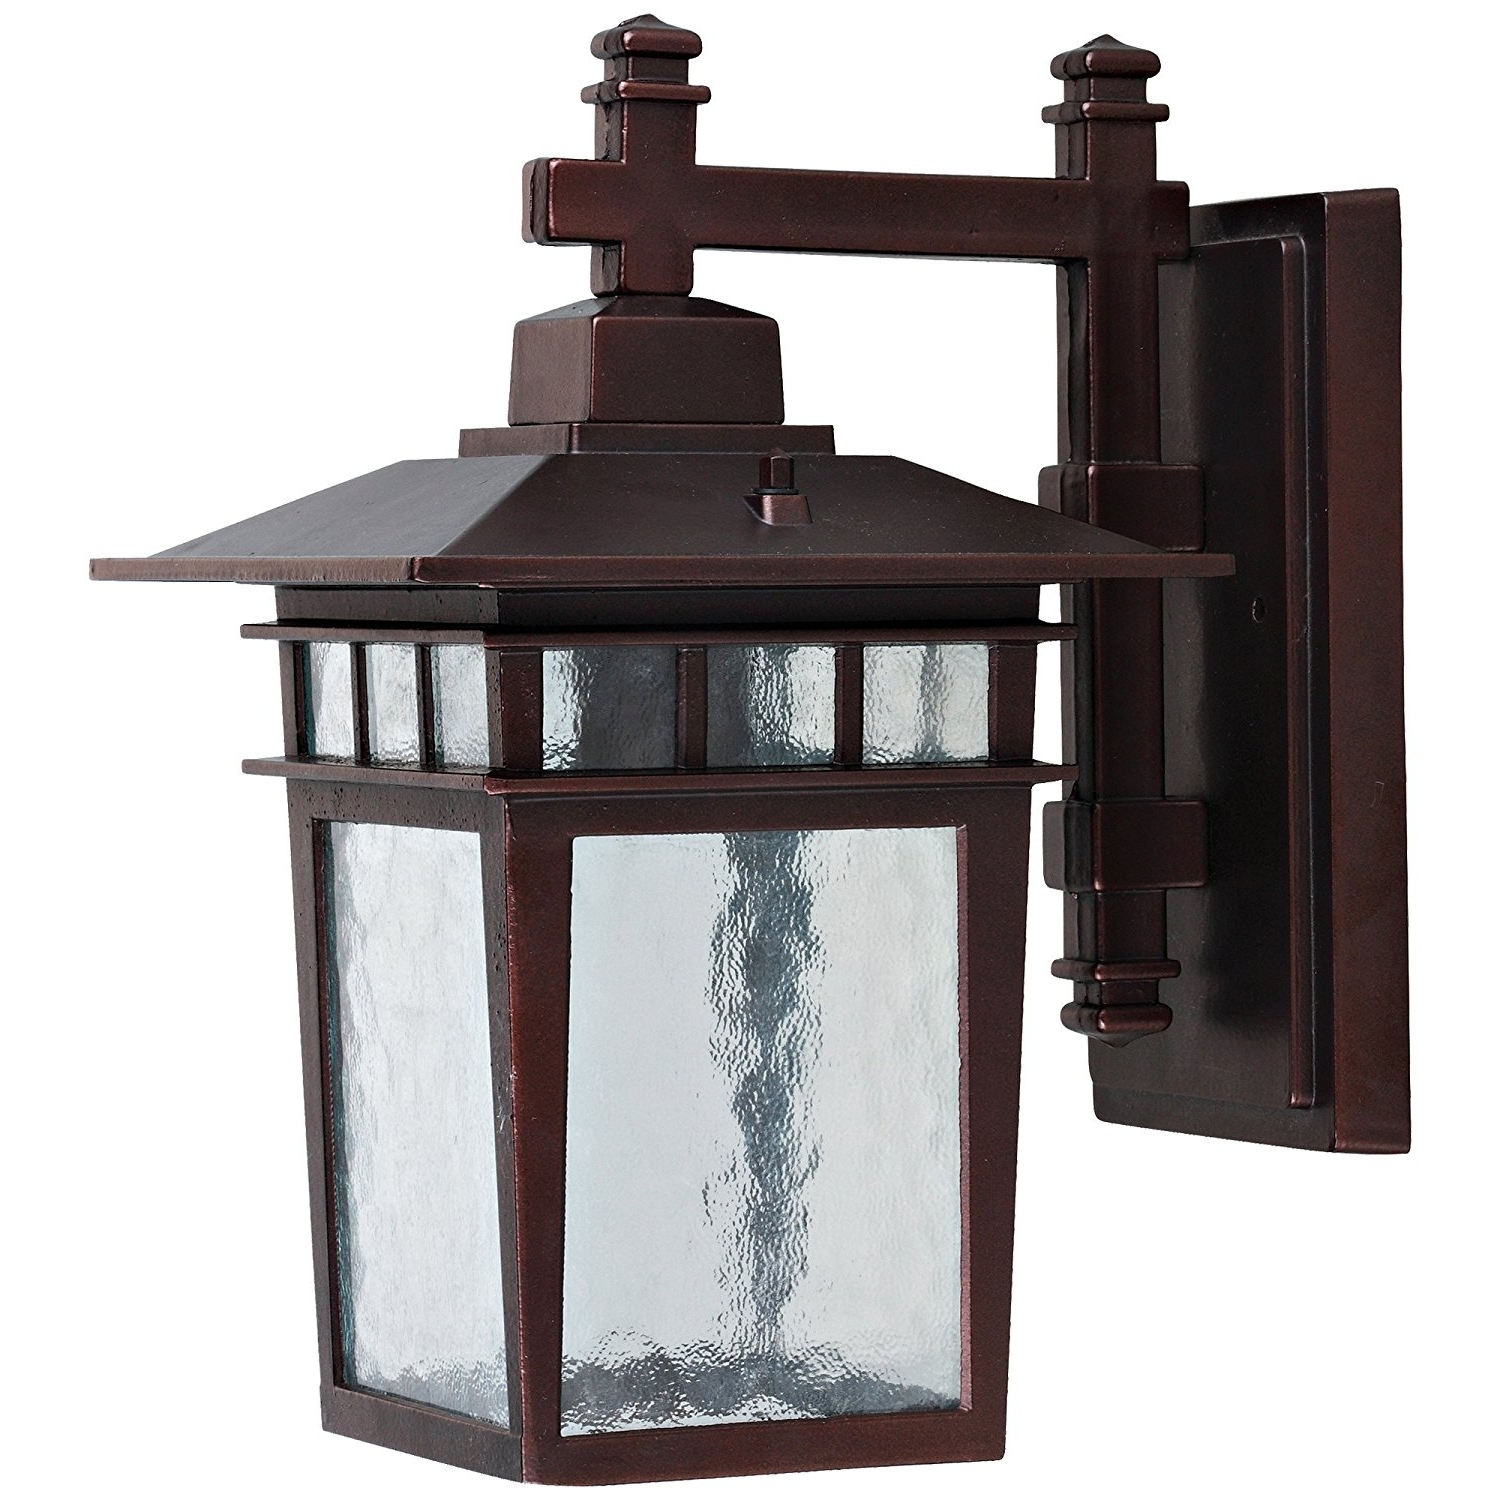 Garden Porch Light Fixtures At Wayfair Within Trendy Outdoor : Outside Wall Lamps Outdoor Sconce Light Fixtures Flush (Gallery 12 of 20)